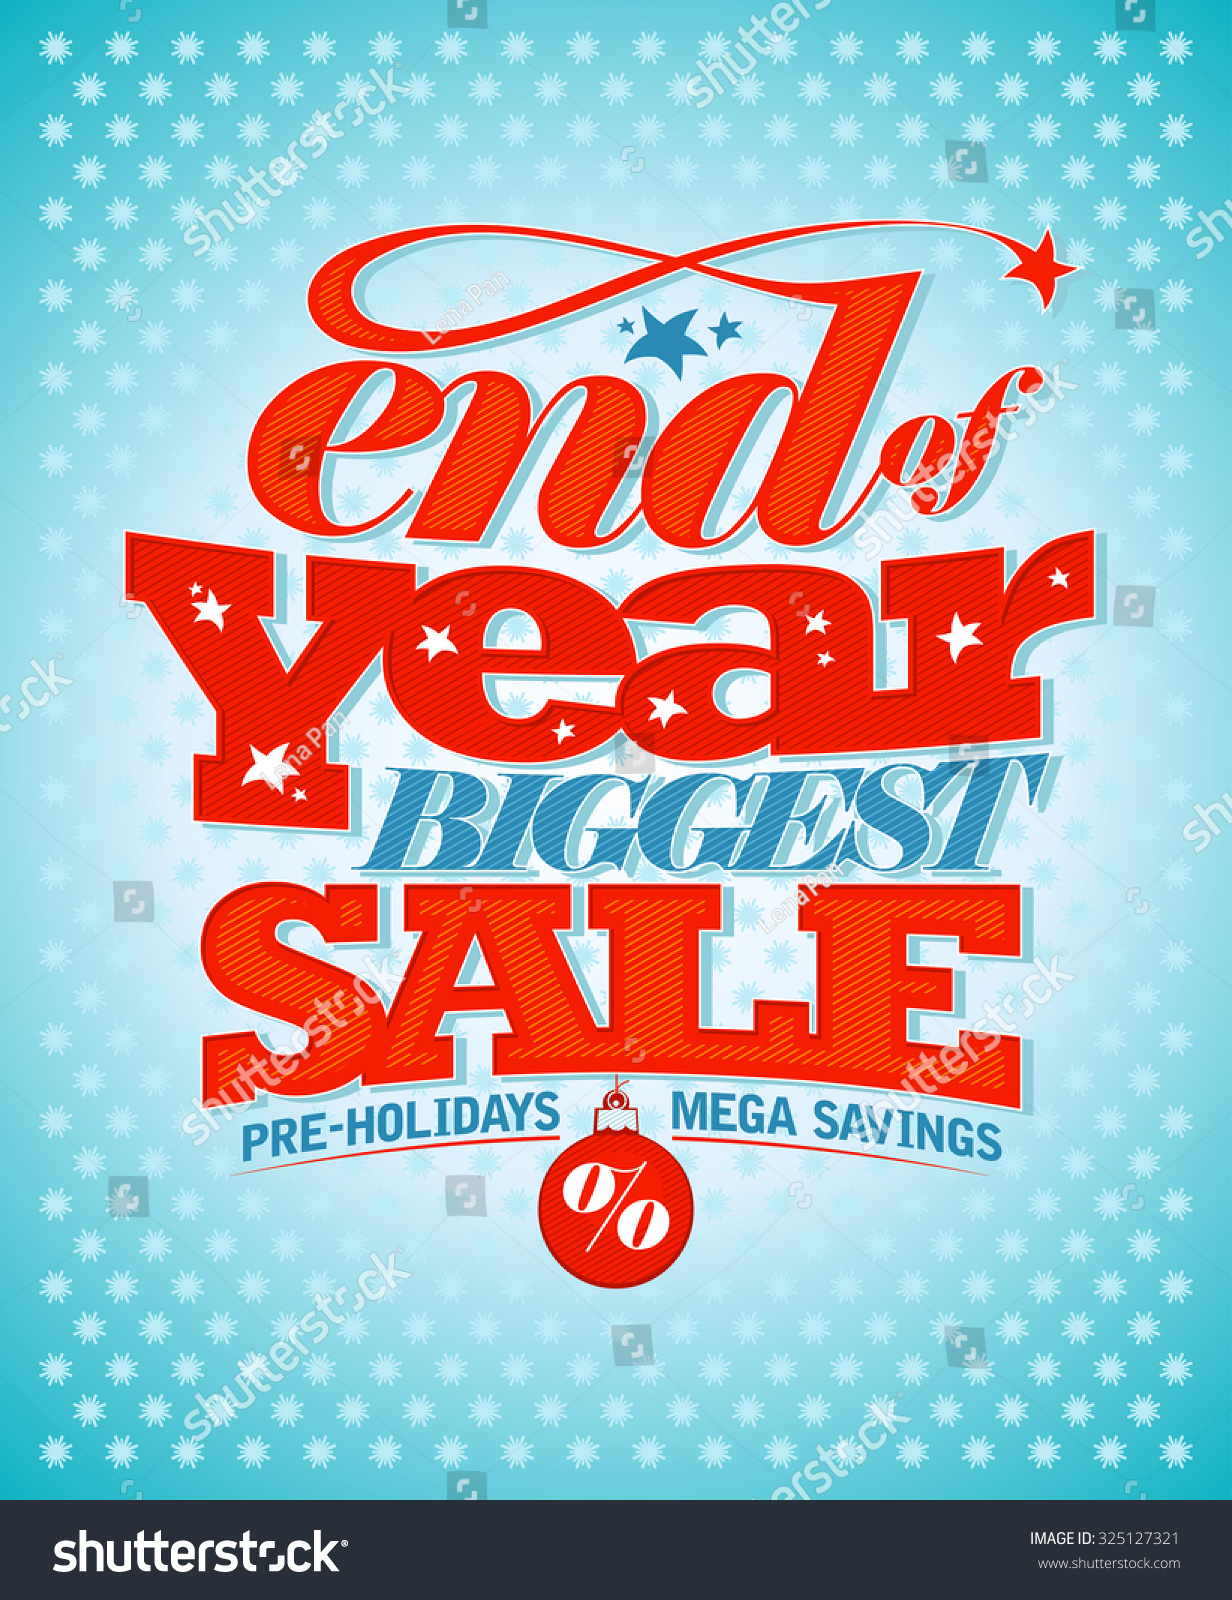 End Of Year Biggest Sale Pre Holidays Mega Savings Banner Design